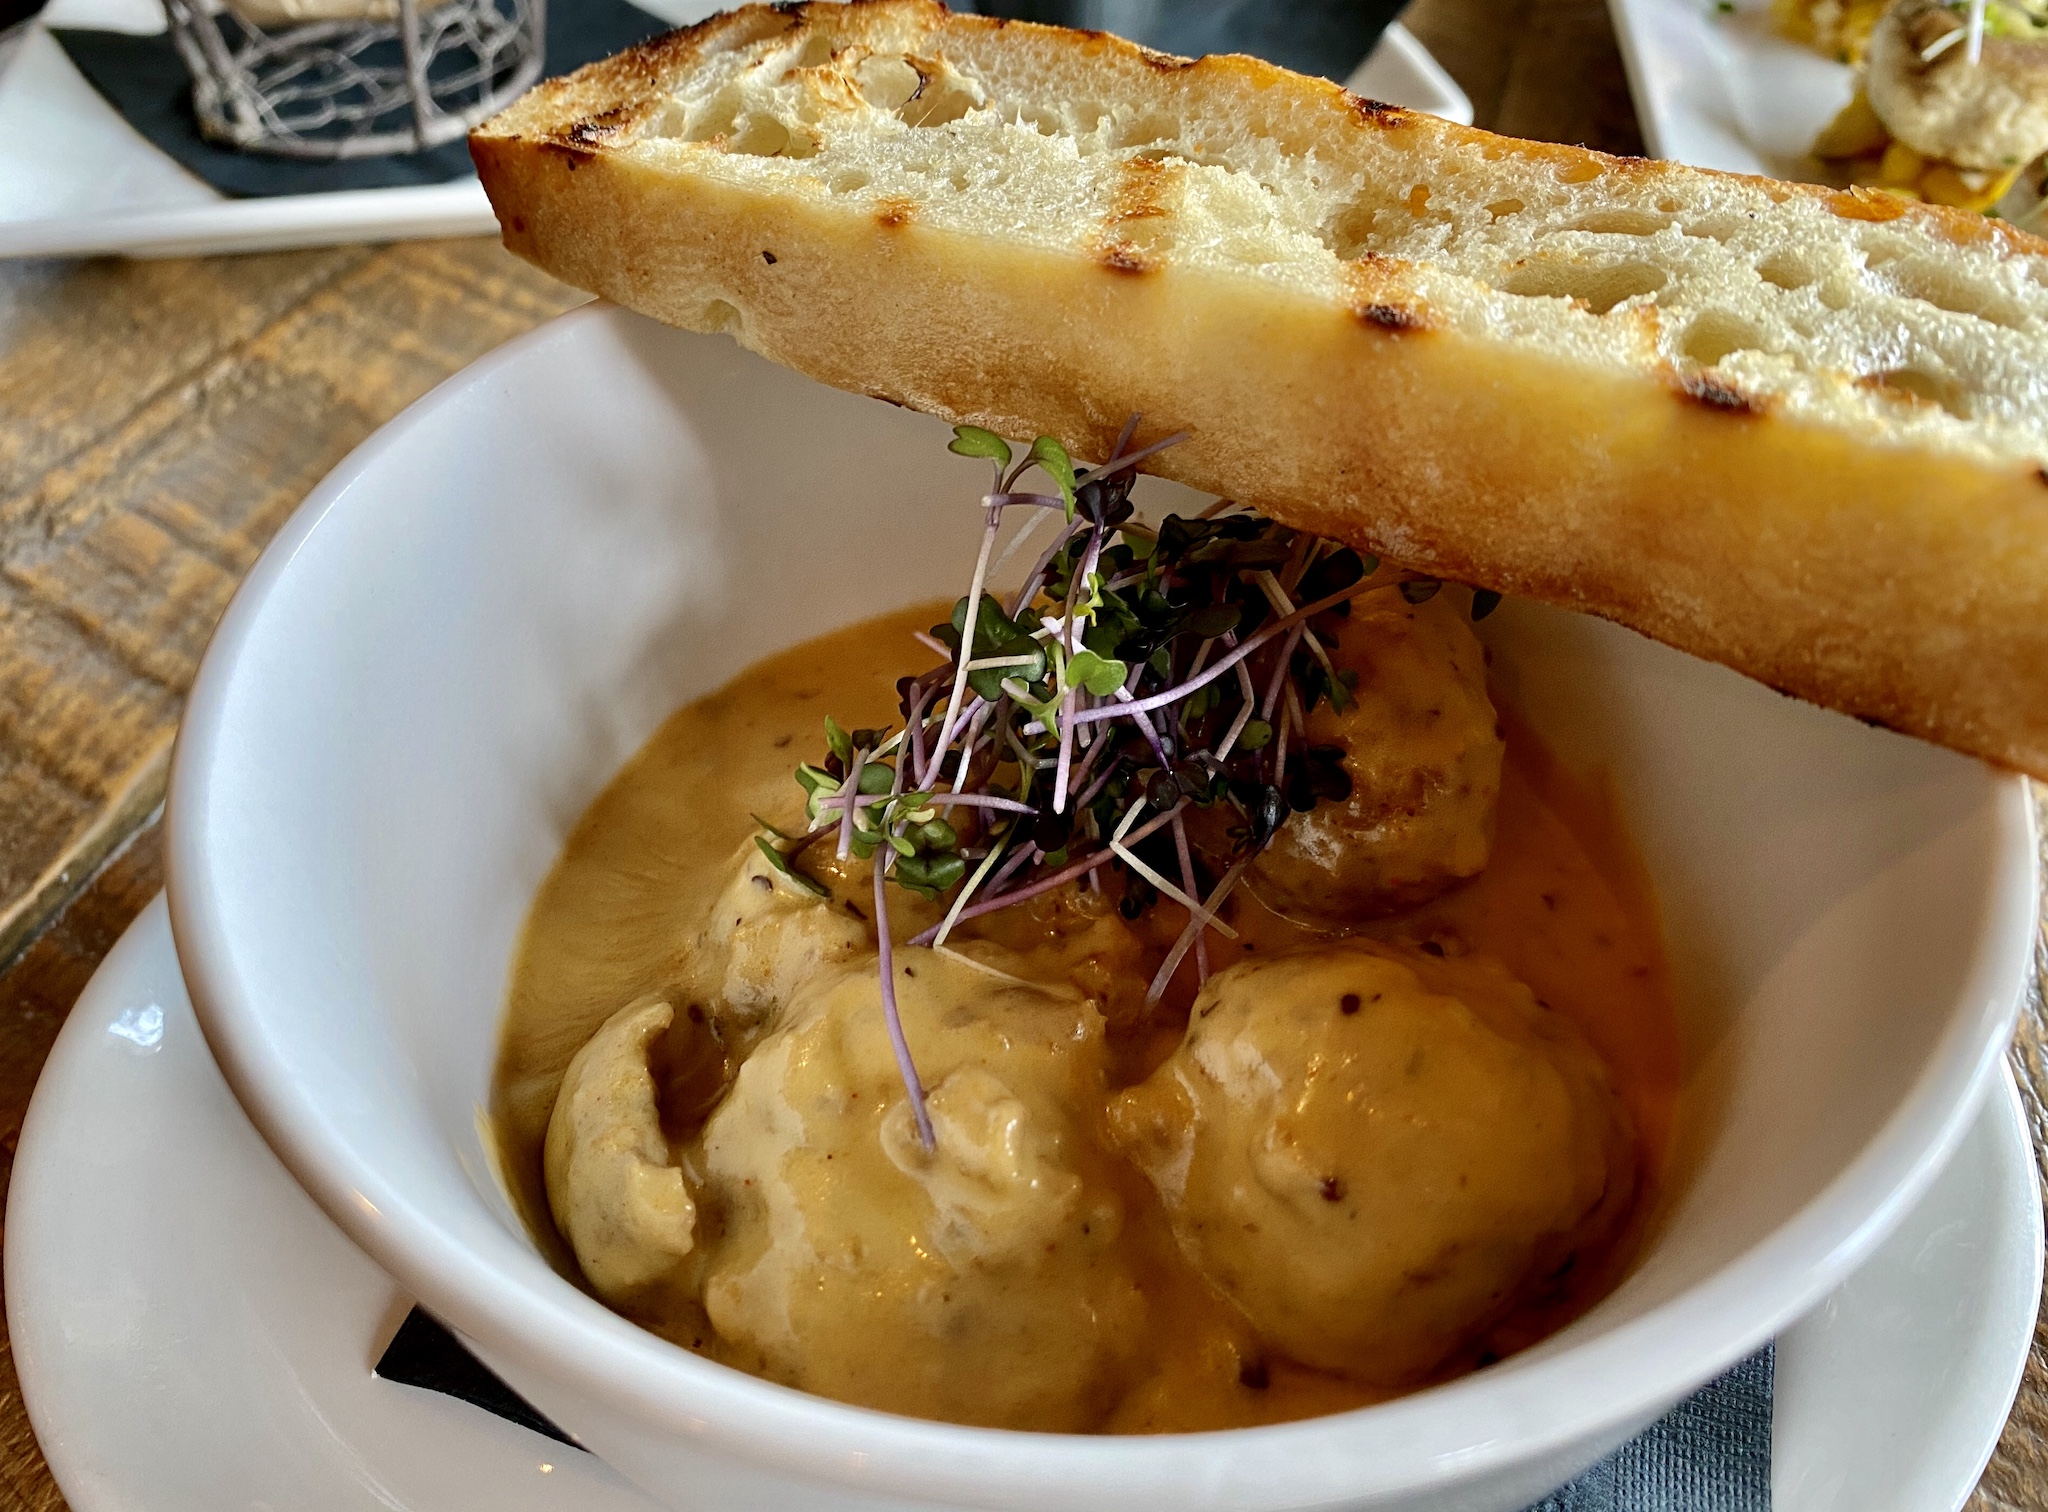 Swedish Meatballs with sherry cream sauce and grilled focaccia